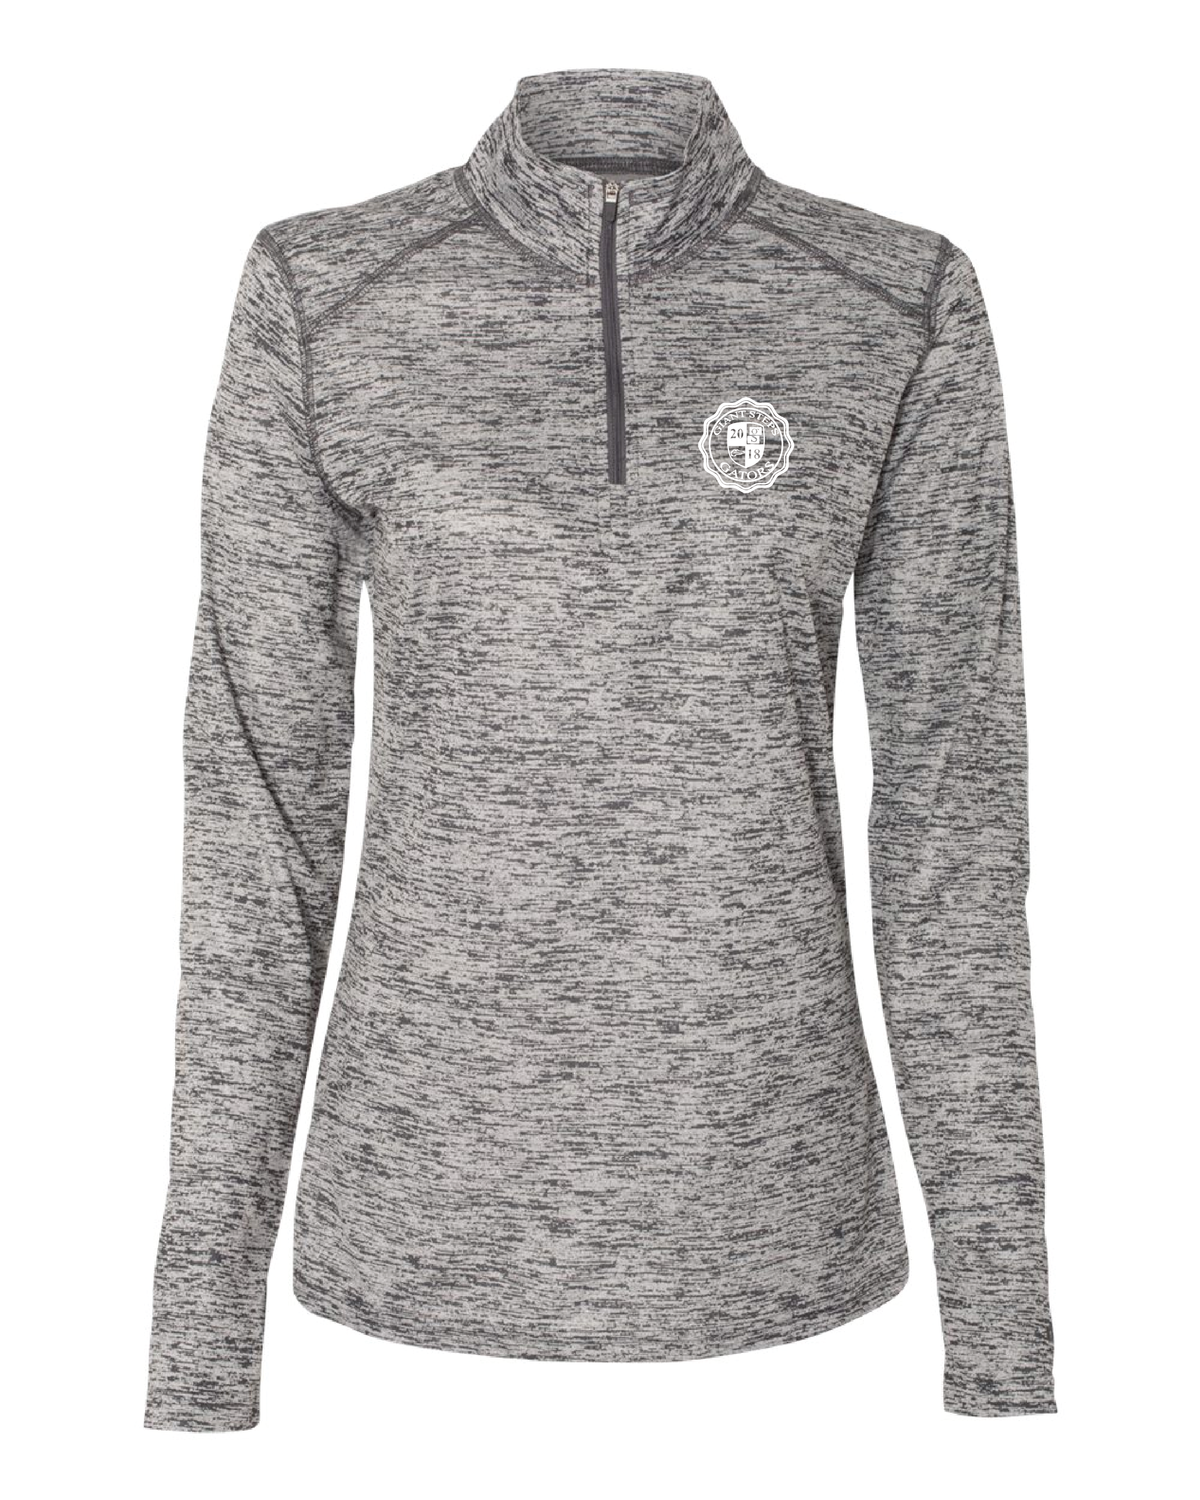 Ladies Tonal Blend Quarter-Zip Pullover